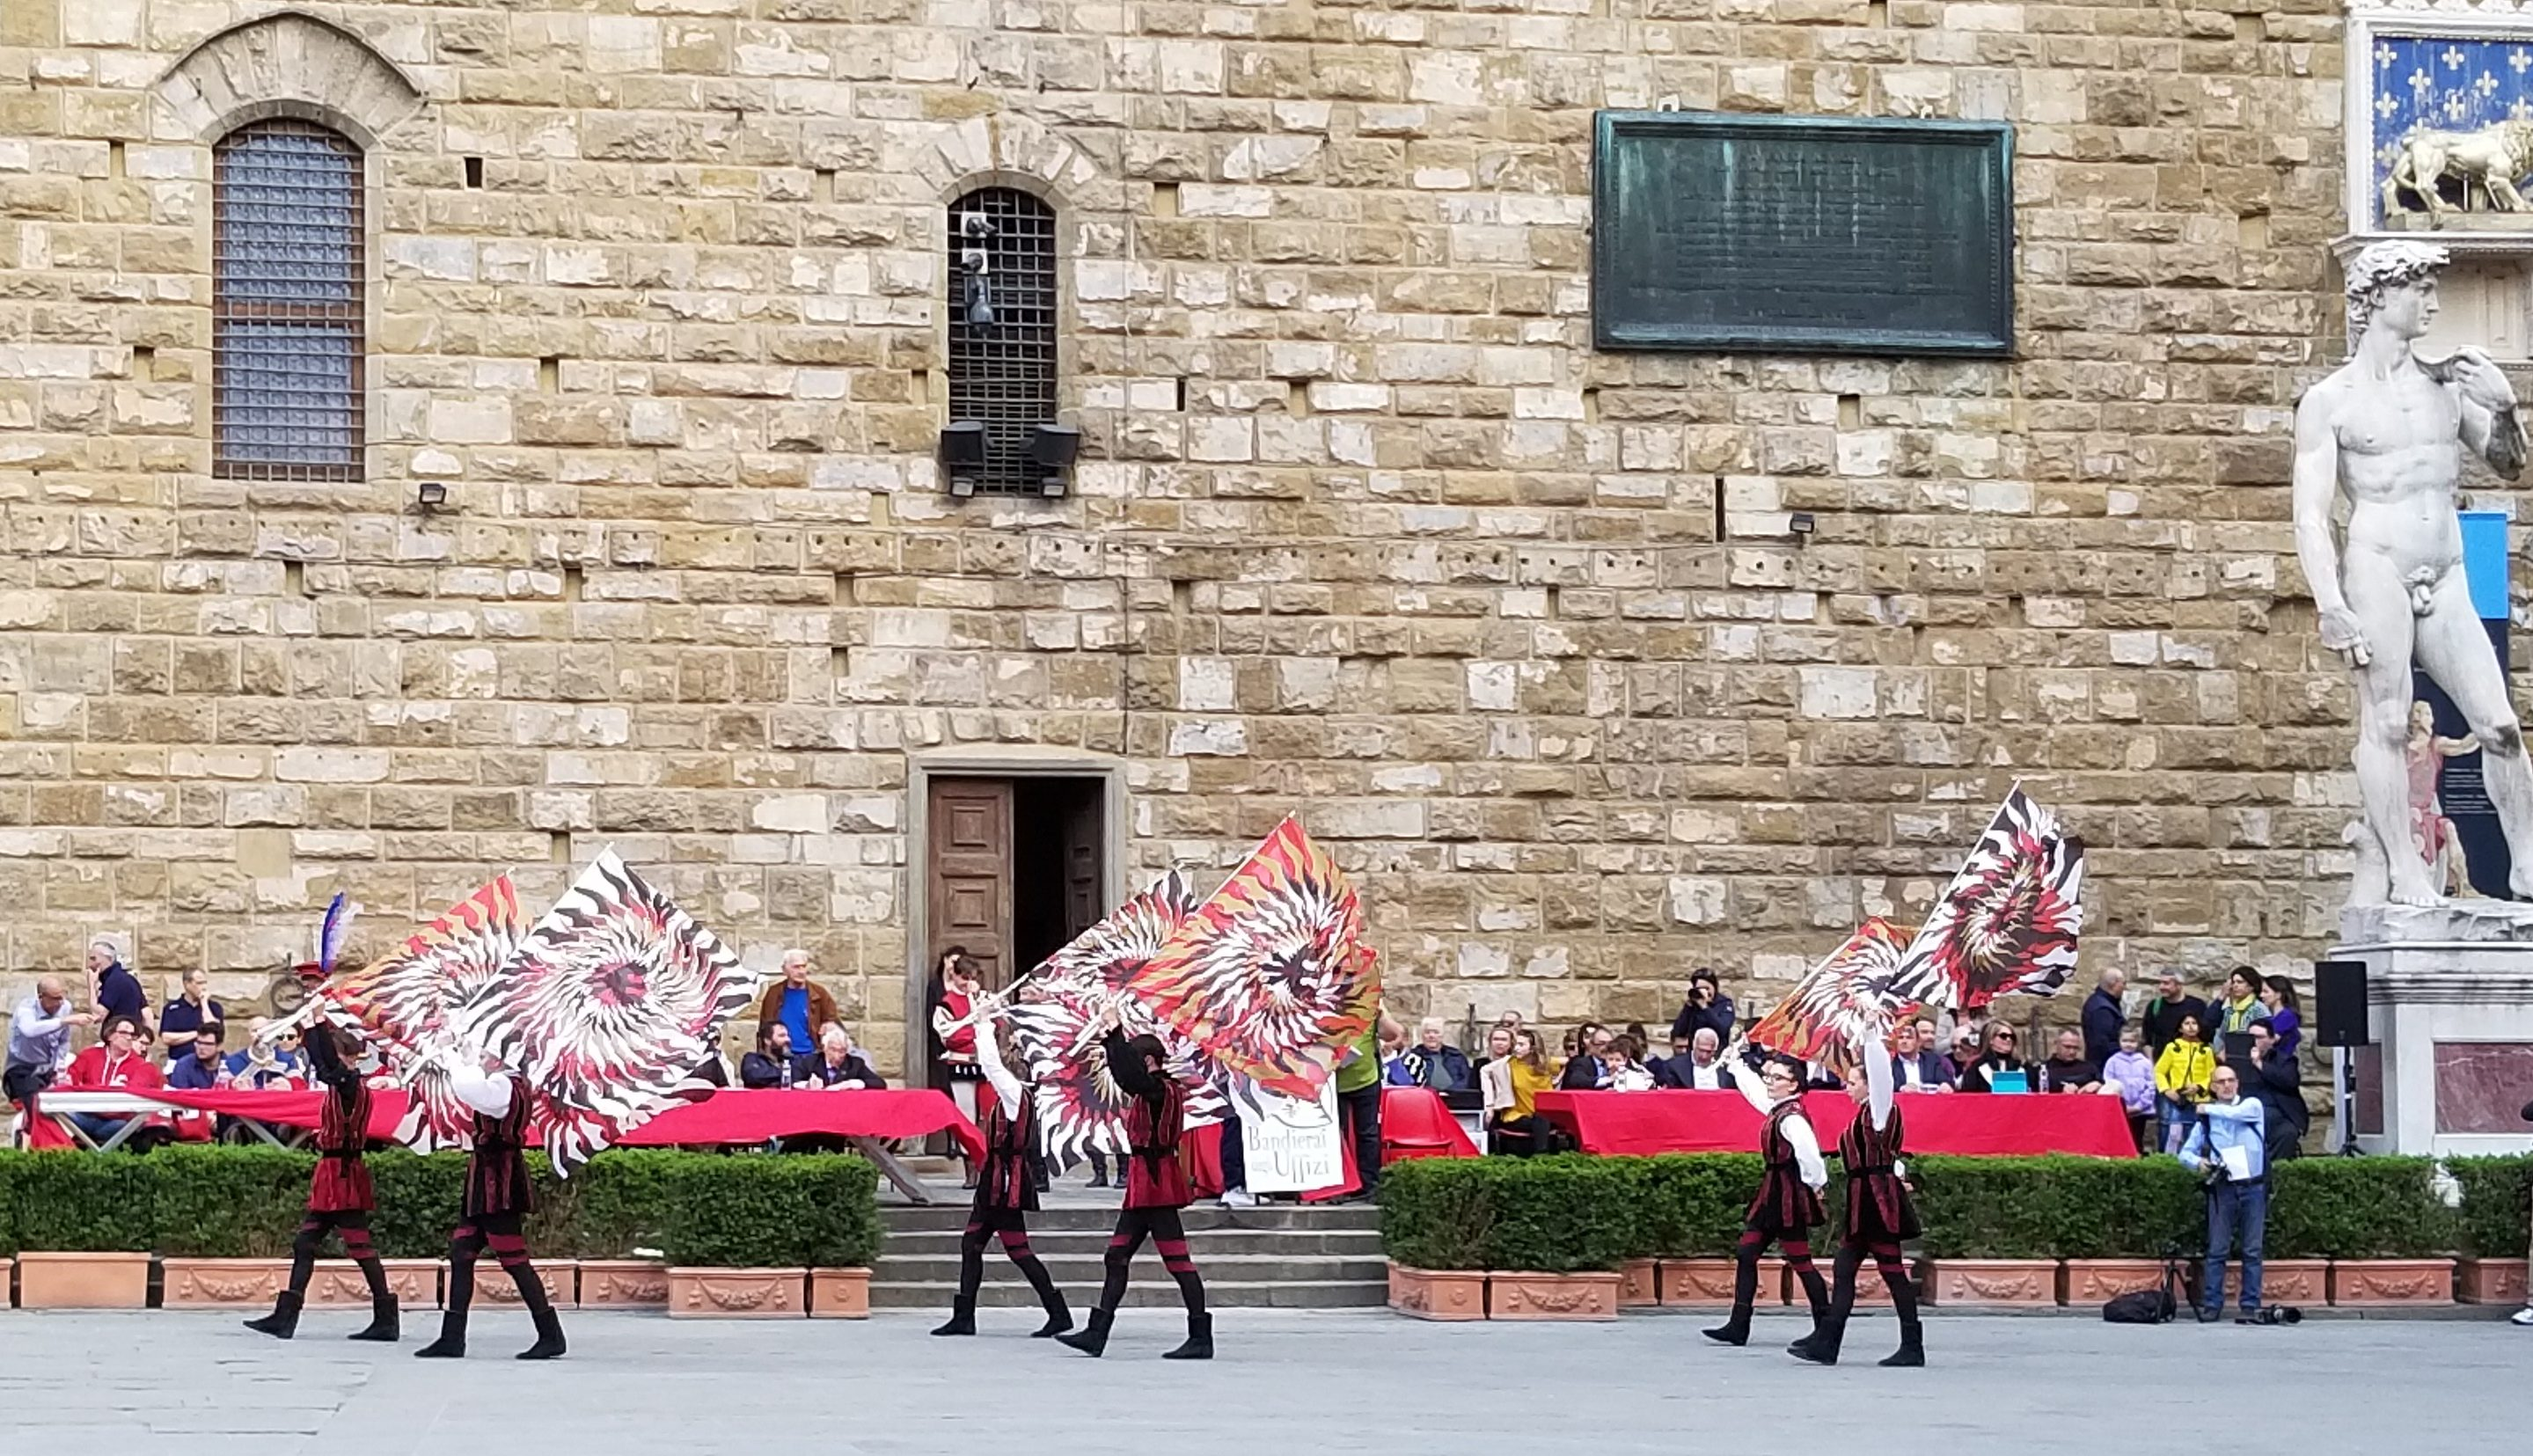 The Bandierai of the Uffizi throw the flag in medieval costumes. They are officials of Florence, Italy. ouritalianjourney.com. https://ouritalianjourney.com/bandierai-uffizi-florence